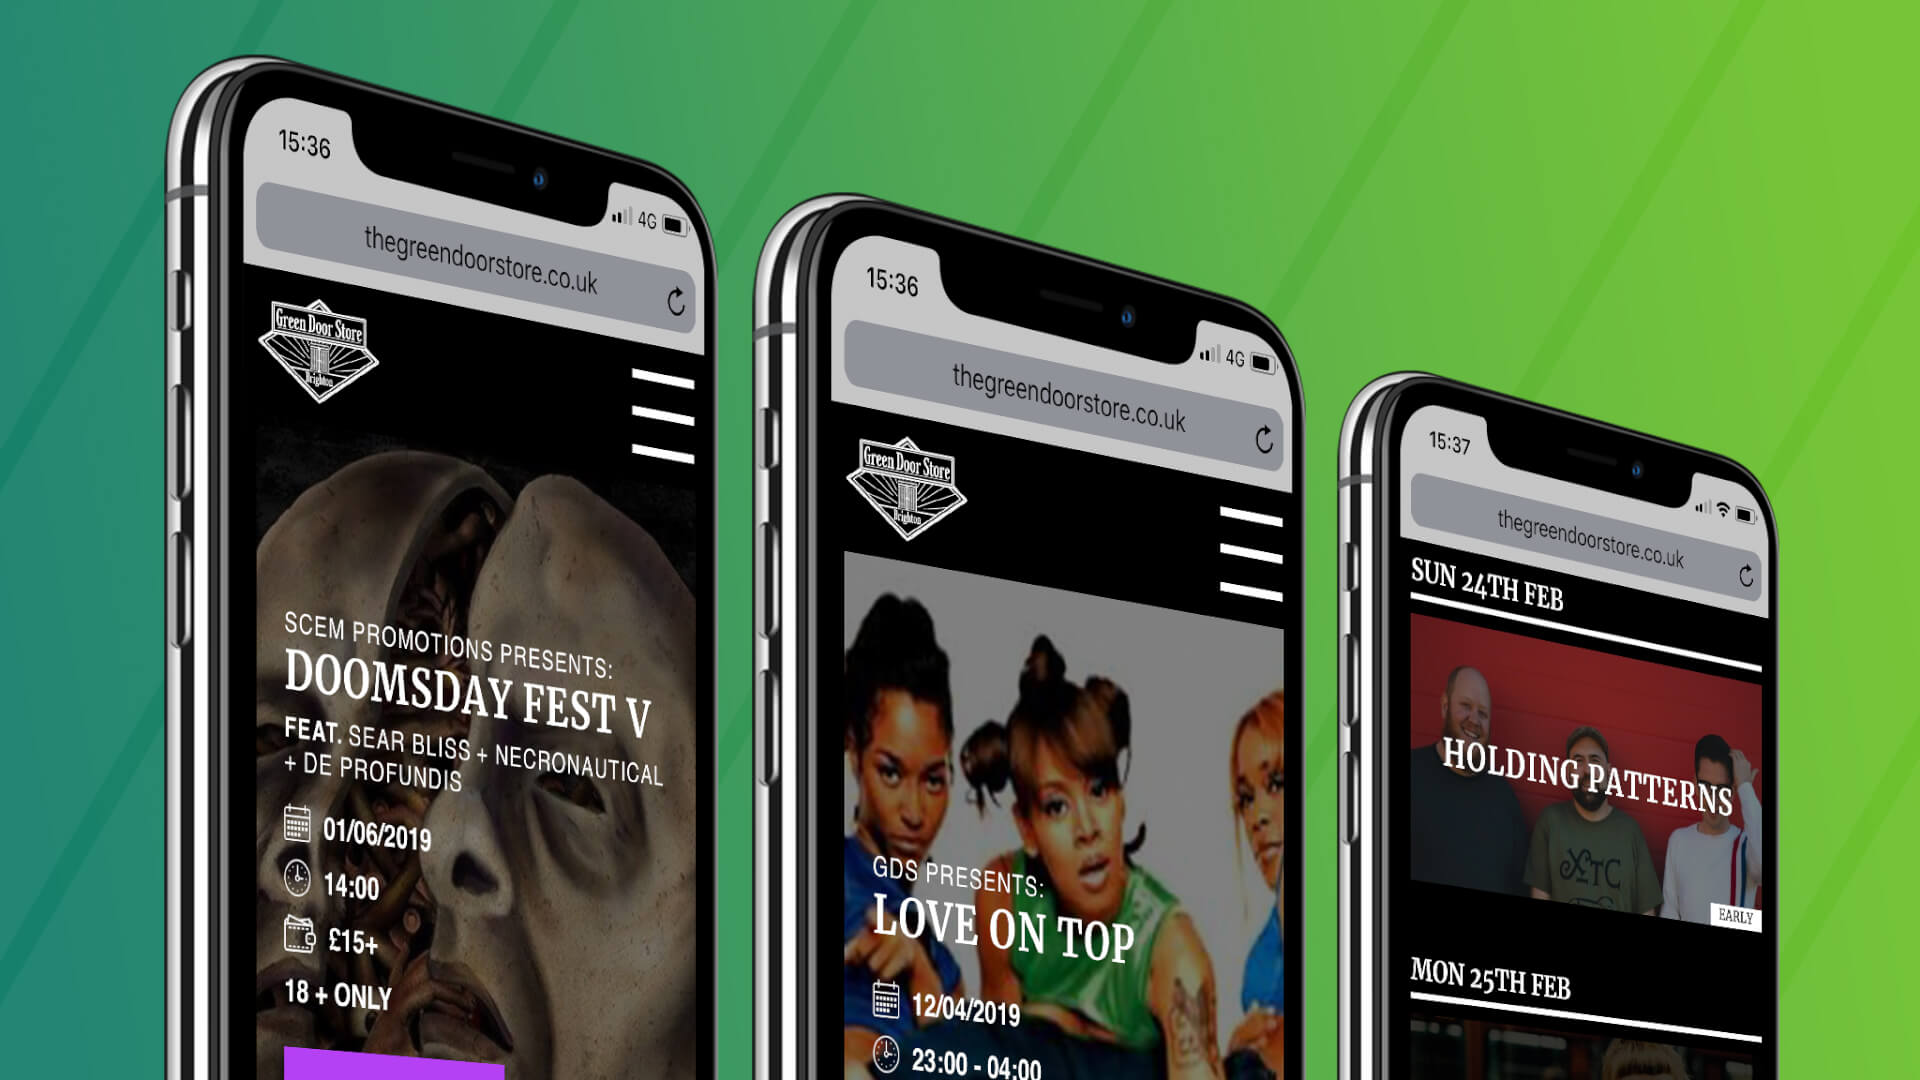 An image showing the new website for The Green Door Store on three phones. From left to right: The homepage carousel, a second view of the homepage carousel and the main listings page.